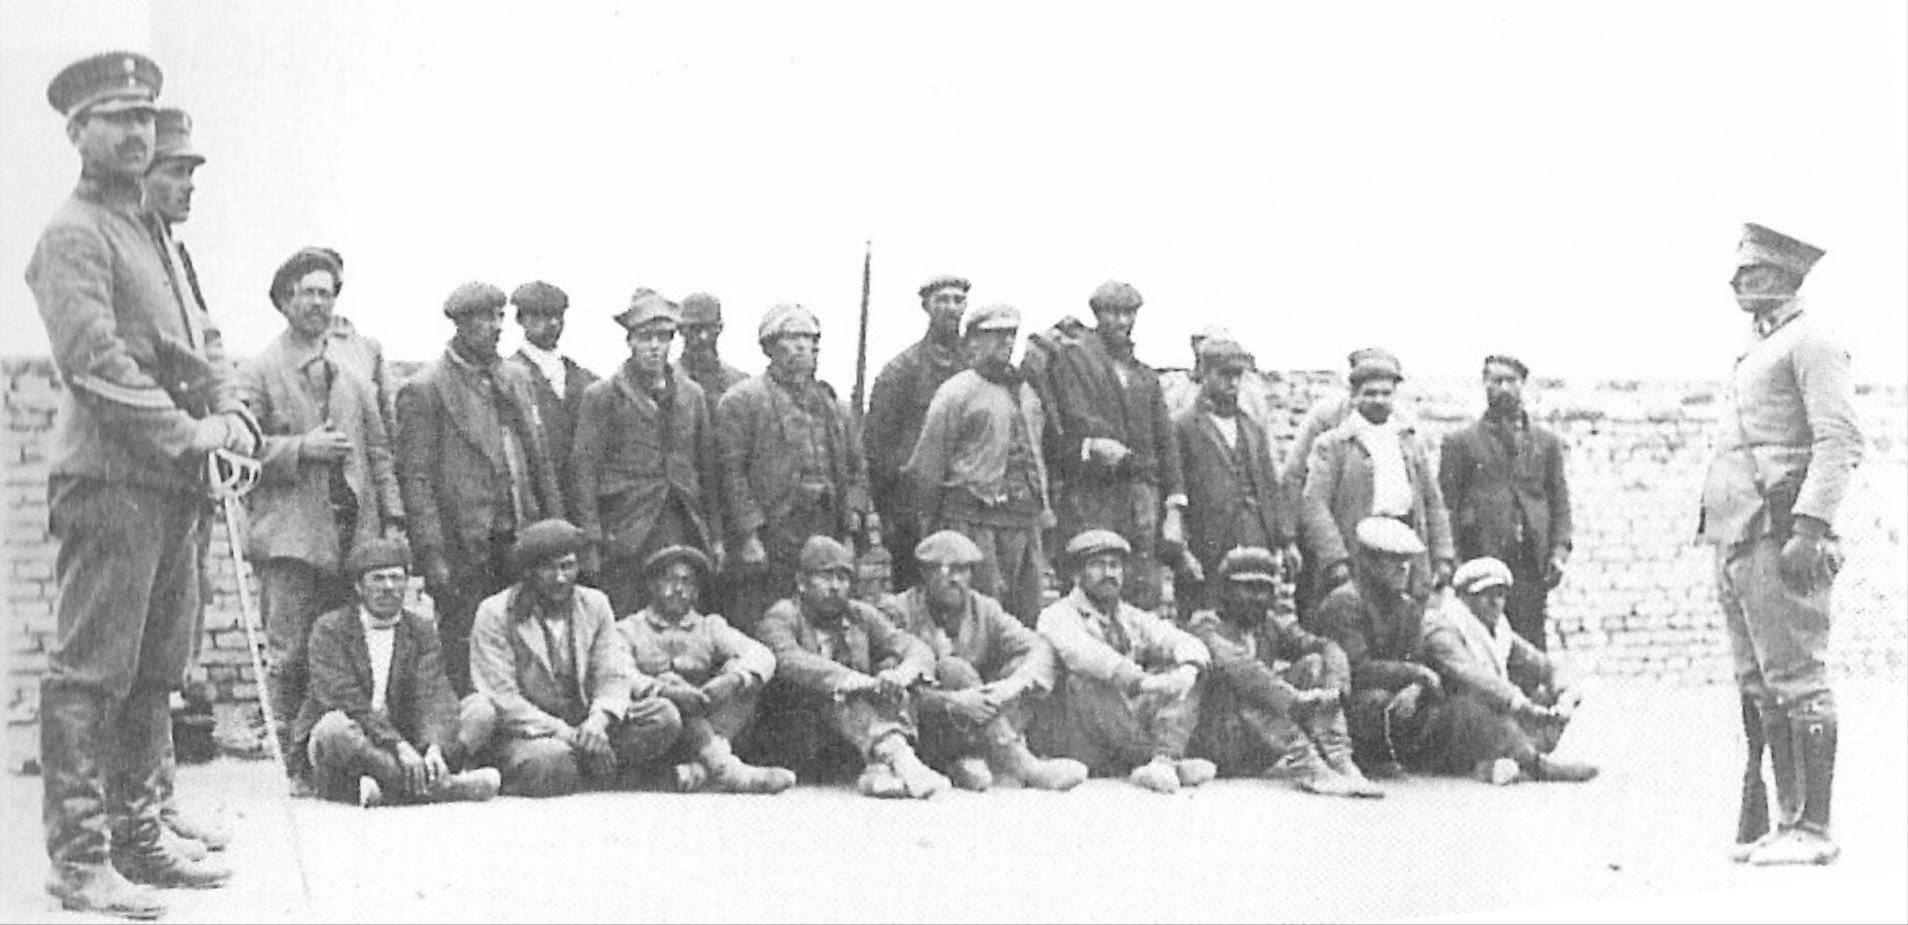 http://upload.wikimedia.org/wikipedia/commons/a/aa/Obreros_Patagonia_Rebelde_Identificados.jpg